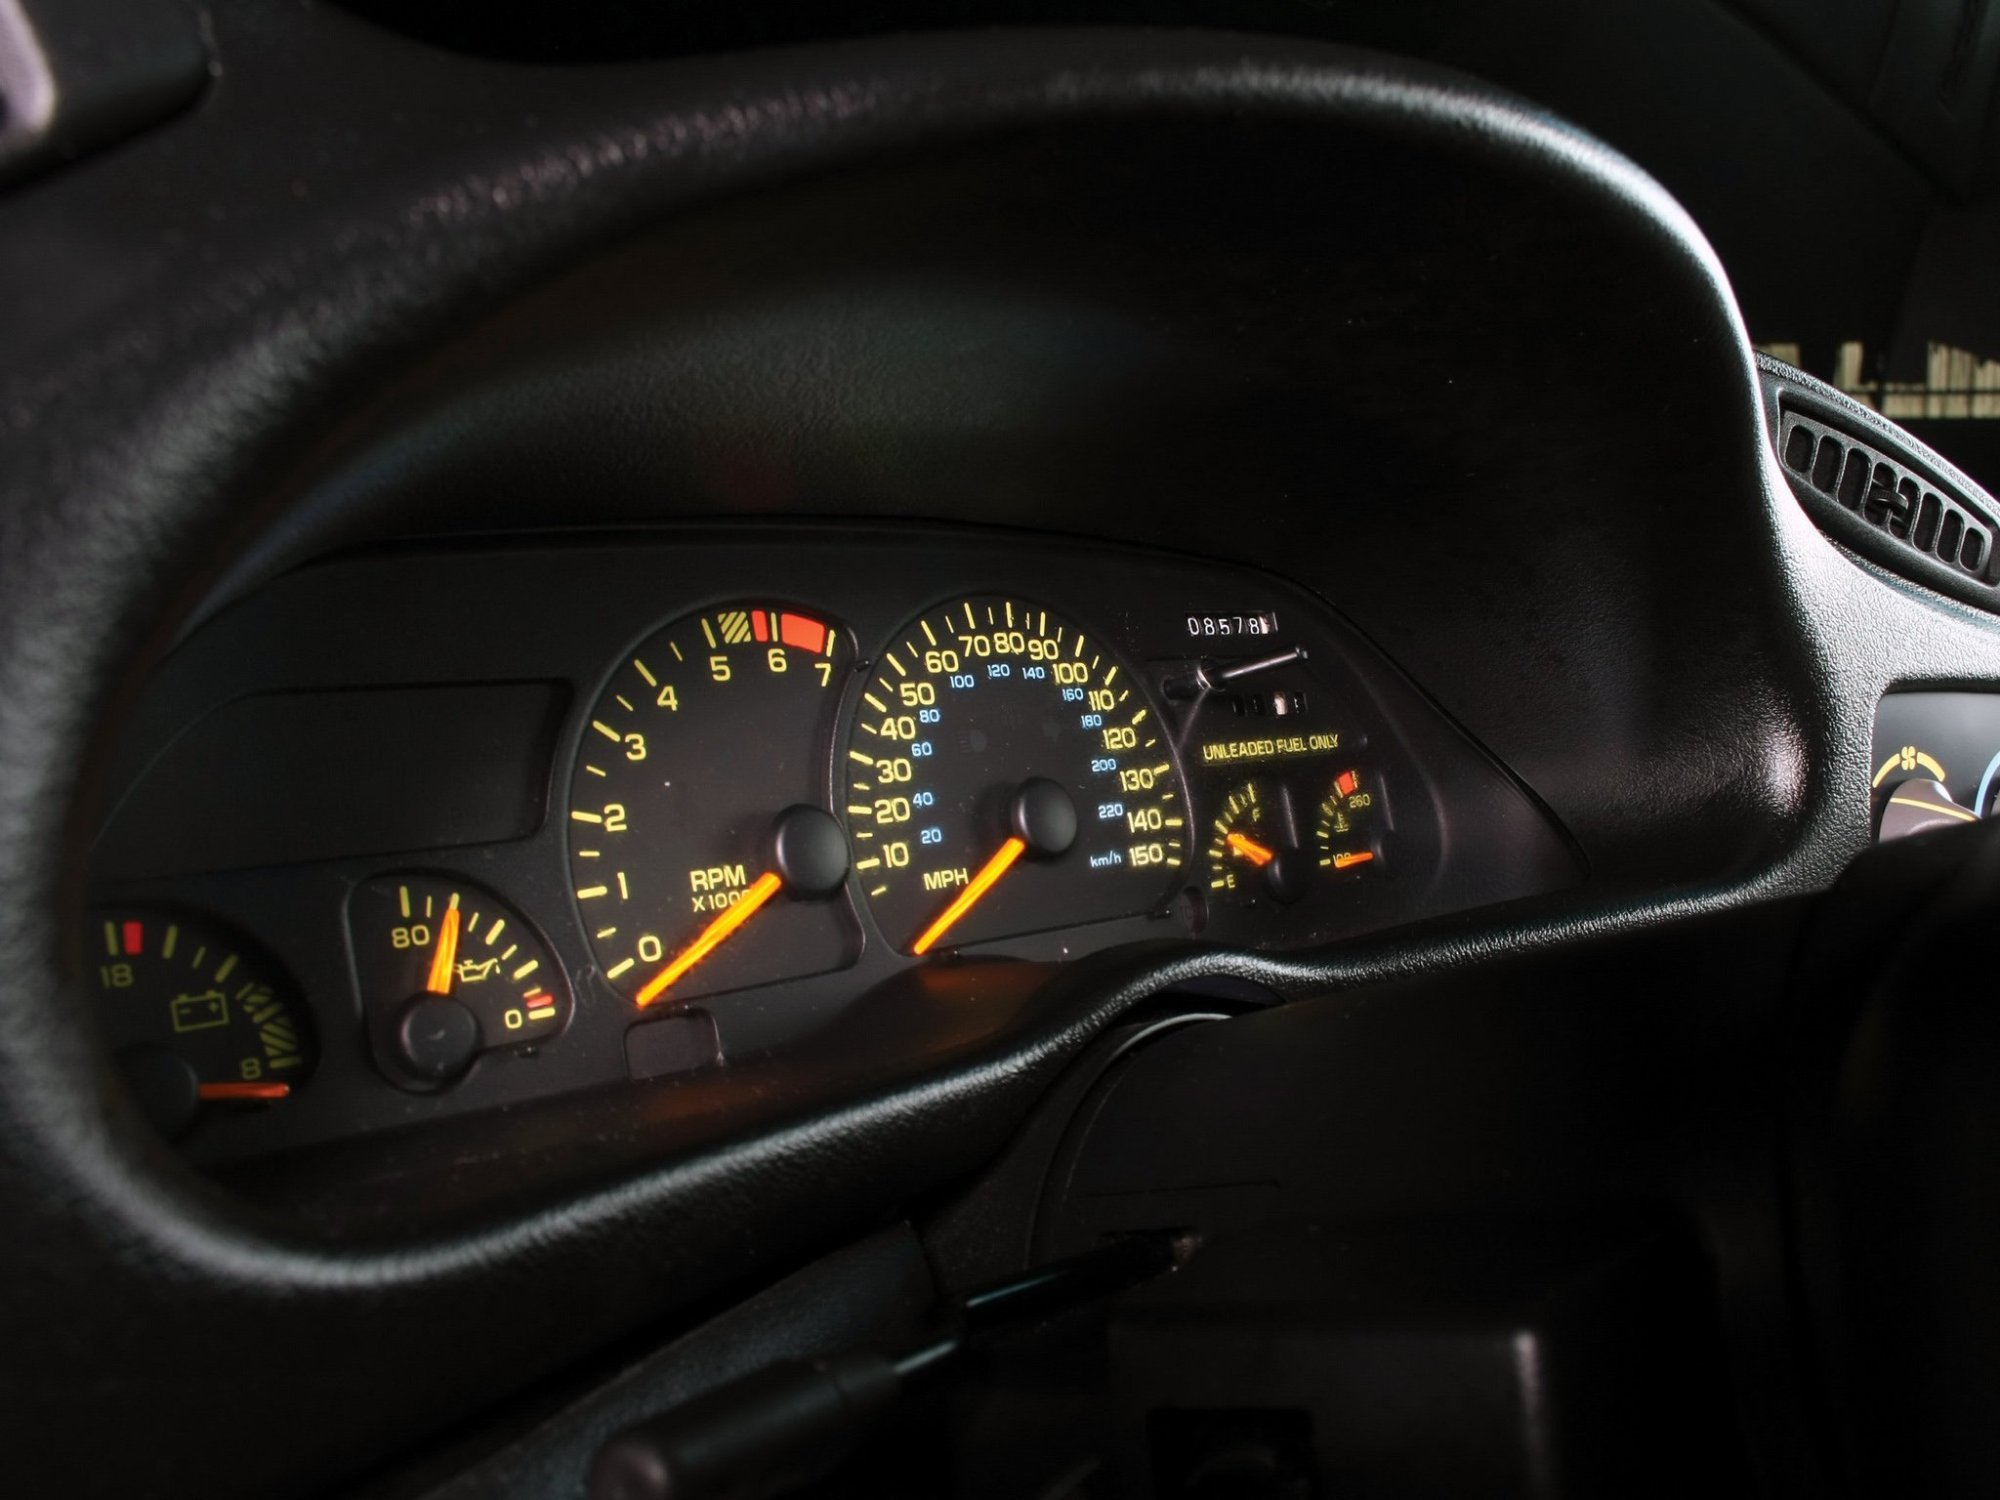 hight resolution of 1993 chevrolet camaro z28 indy 500 pace muscle race racing interior g wallpaper 2048x1536 344281 wallpaperup